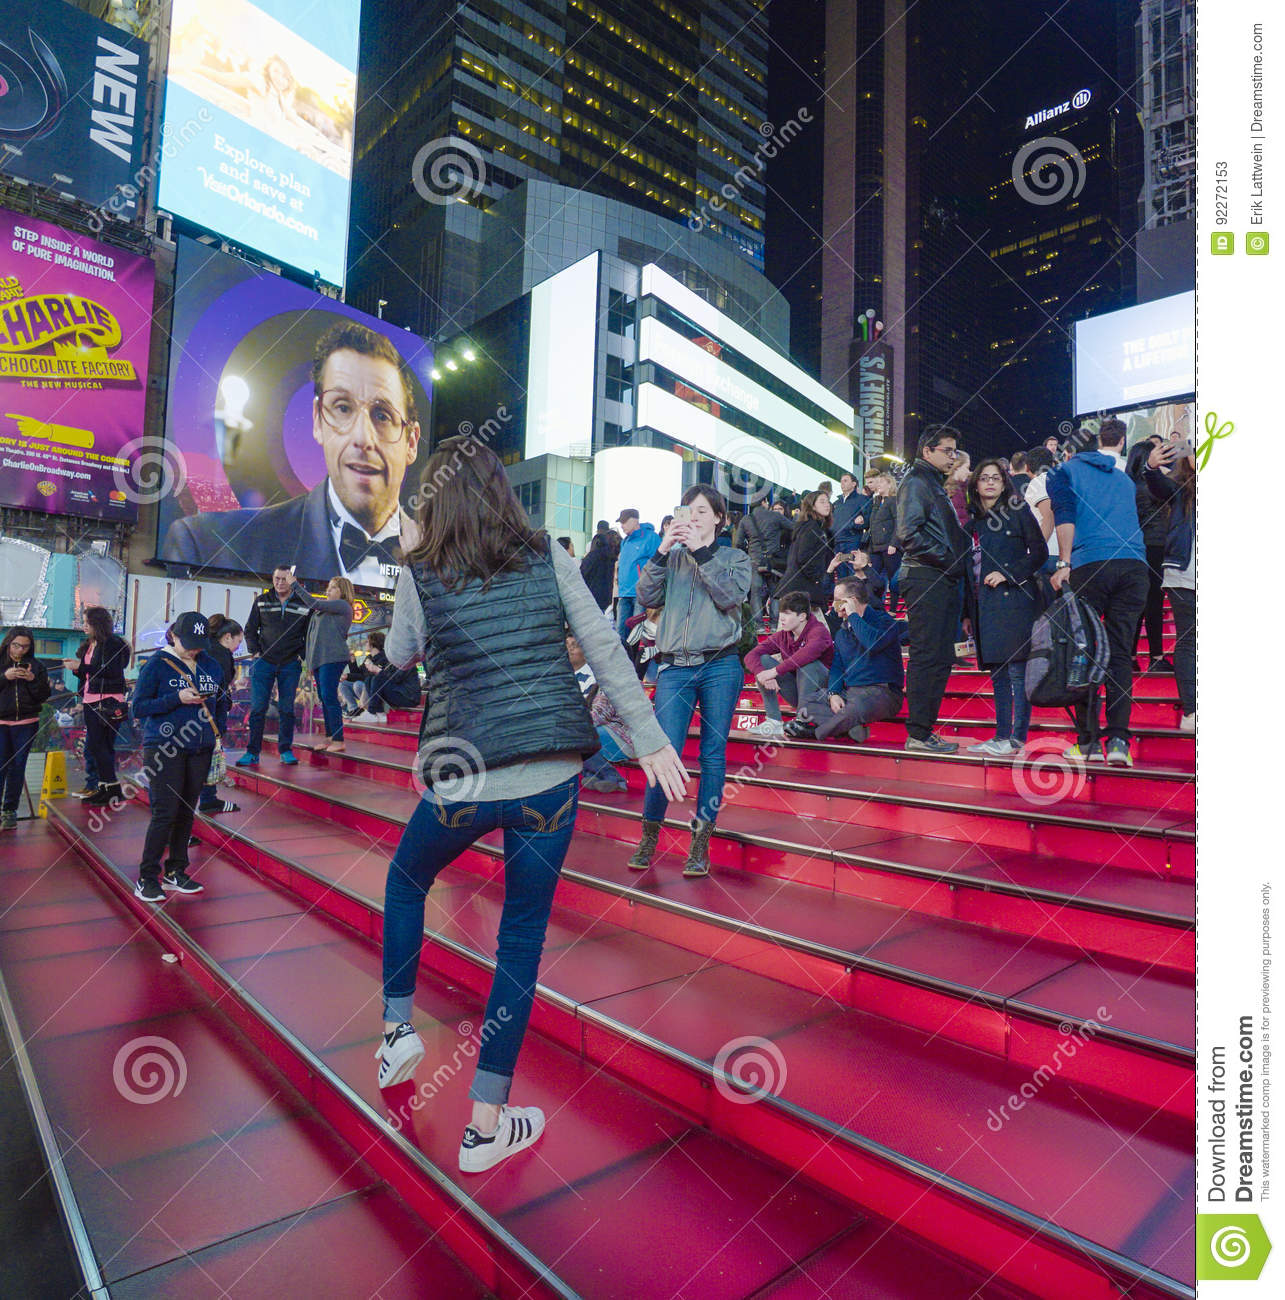 Father Duffy steps at Times Sqaure New York- MANHATTAN - NEW YORK - APRIL 1, 2017